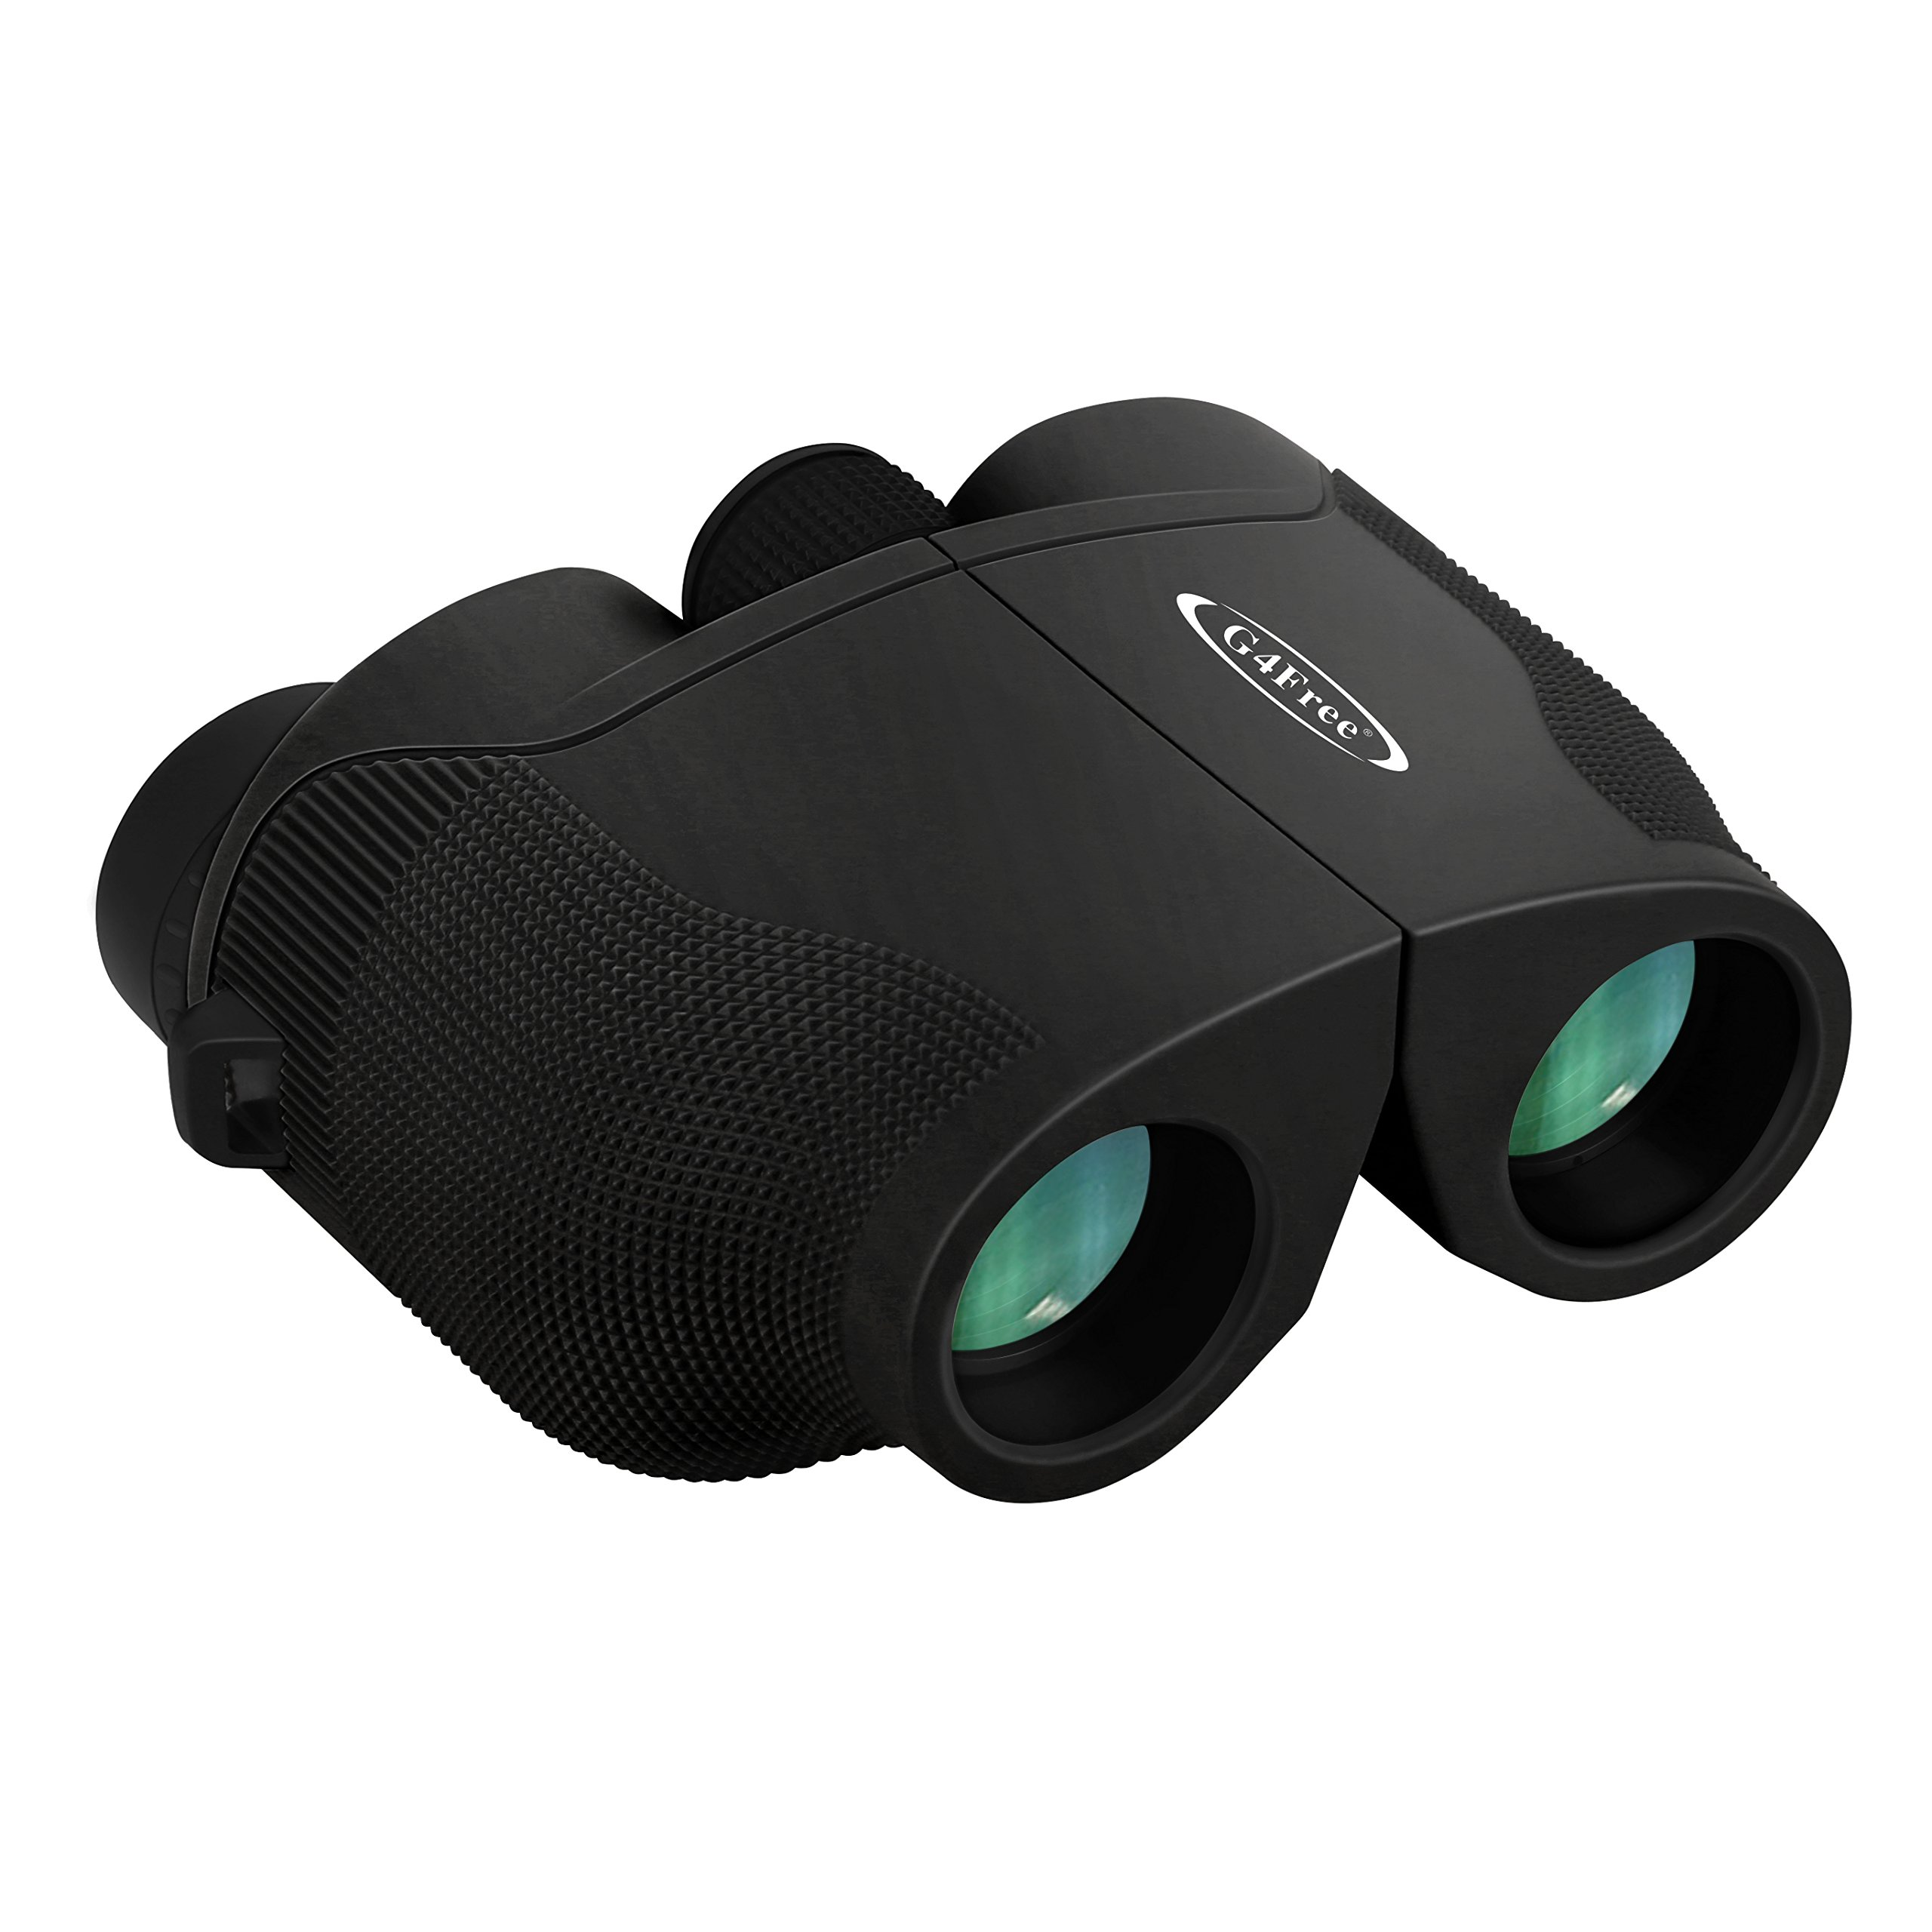 G4Free 10x25 Wide Angle Binoculars Compact BAK4 Weak Light Night Vision Binocular High Powered with Clear Vision Great for Bird Watching Outdoor Sports Games and Hunting(Black) by G4Free